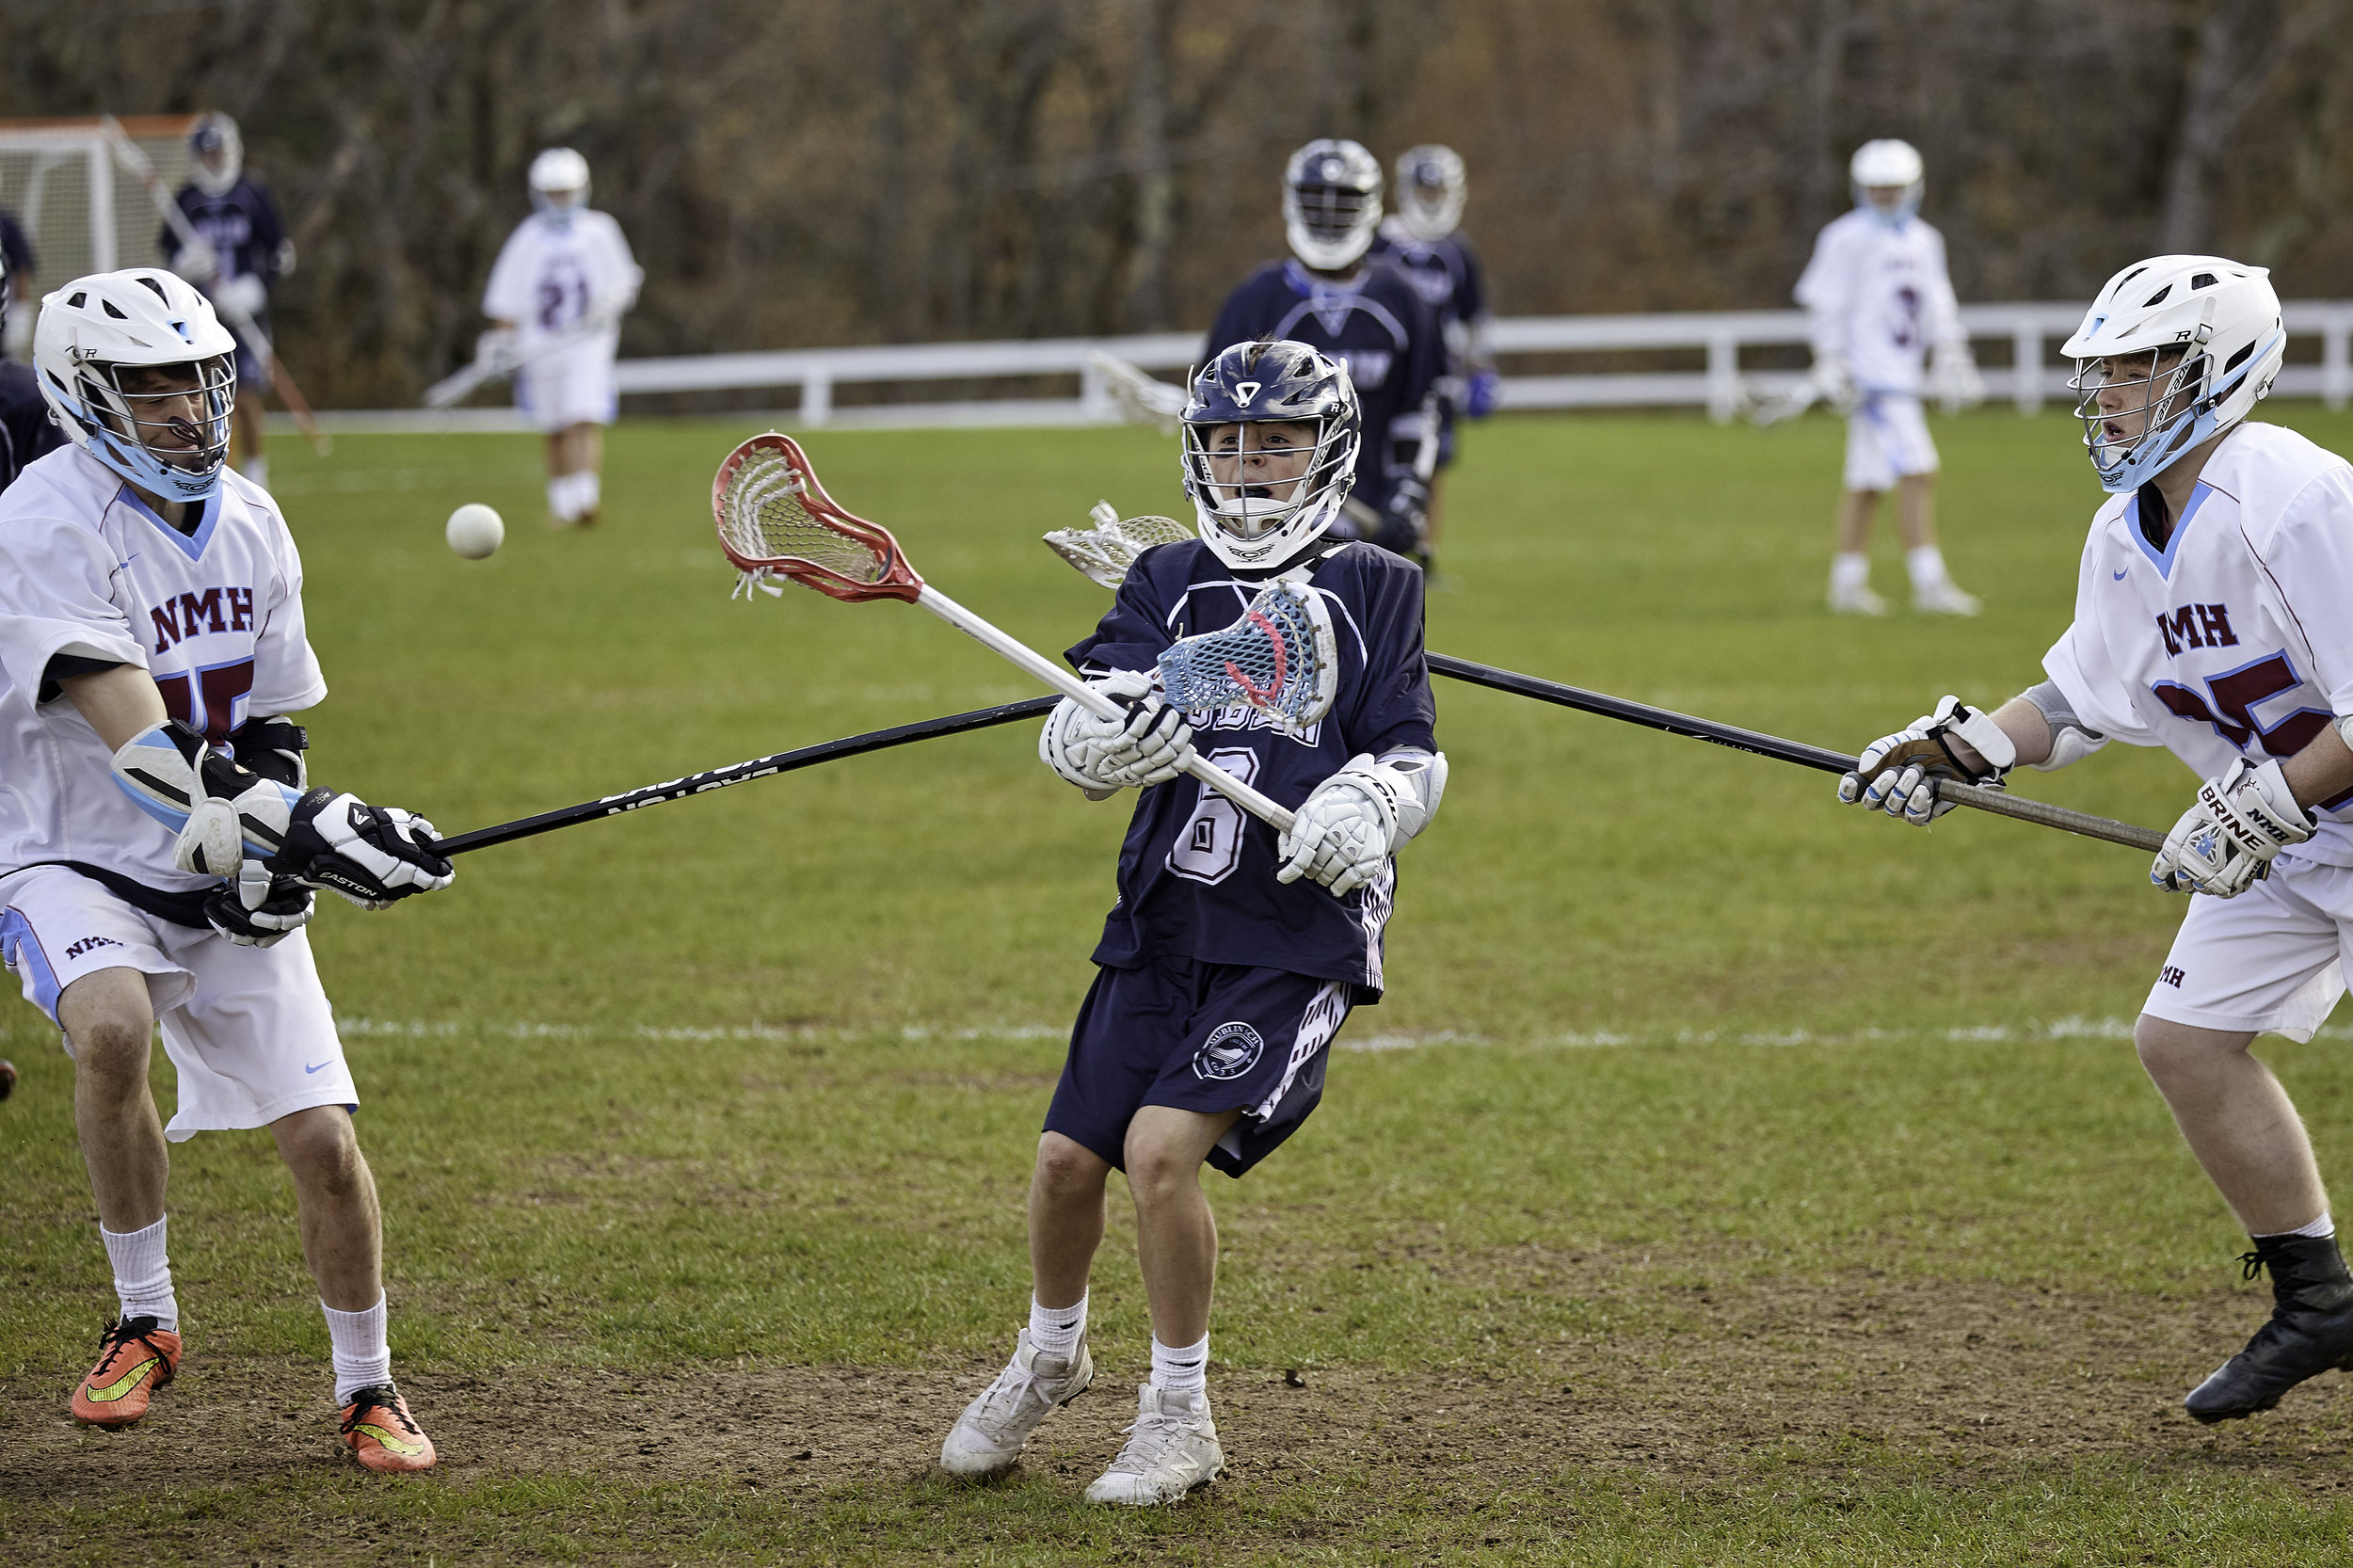 Boys Lax vs Northfield Mount Hermon JV - May 15 2019 - 0067.jpg